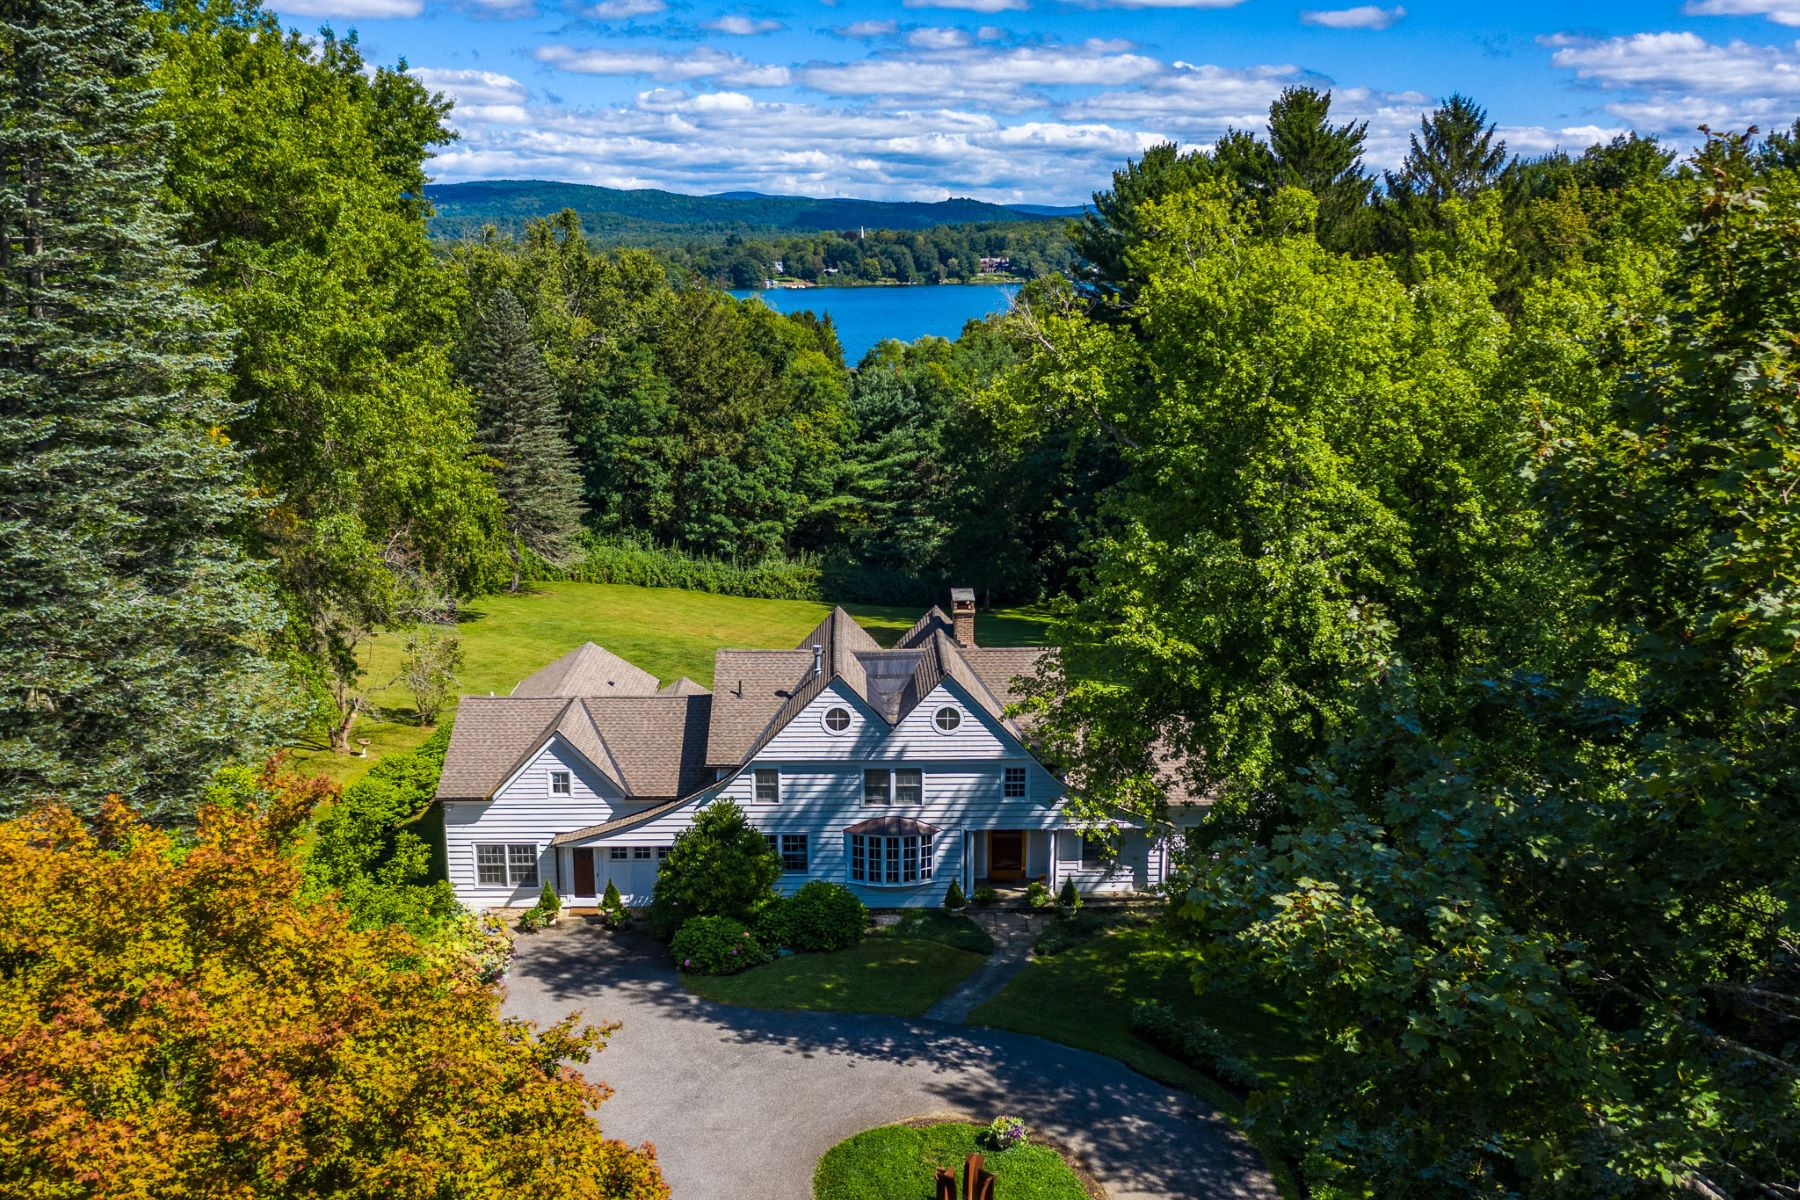 Single Family Homes for Sale at Spectacular Lakeville Home with Lakefront Cabin 226 Millerton Road, Salisbury, Connecticut 06039 United States